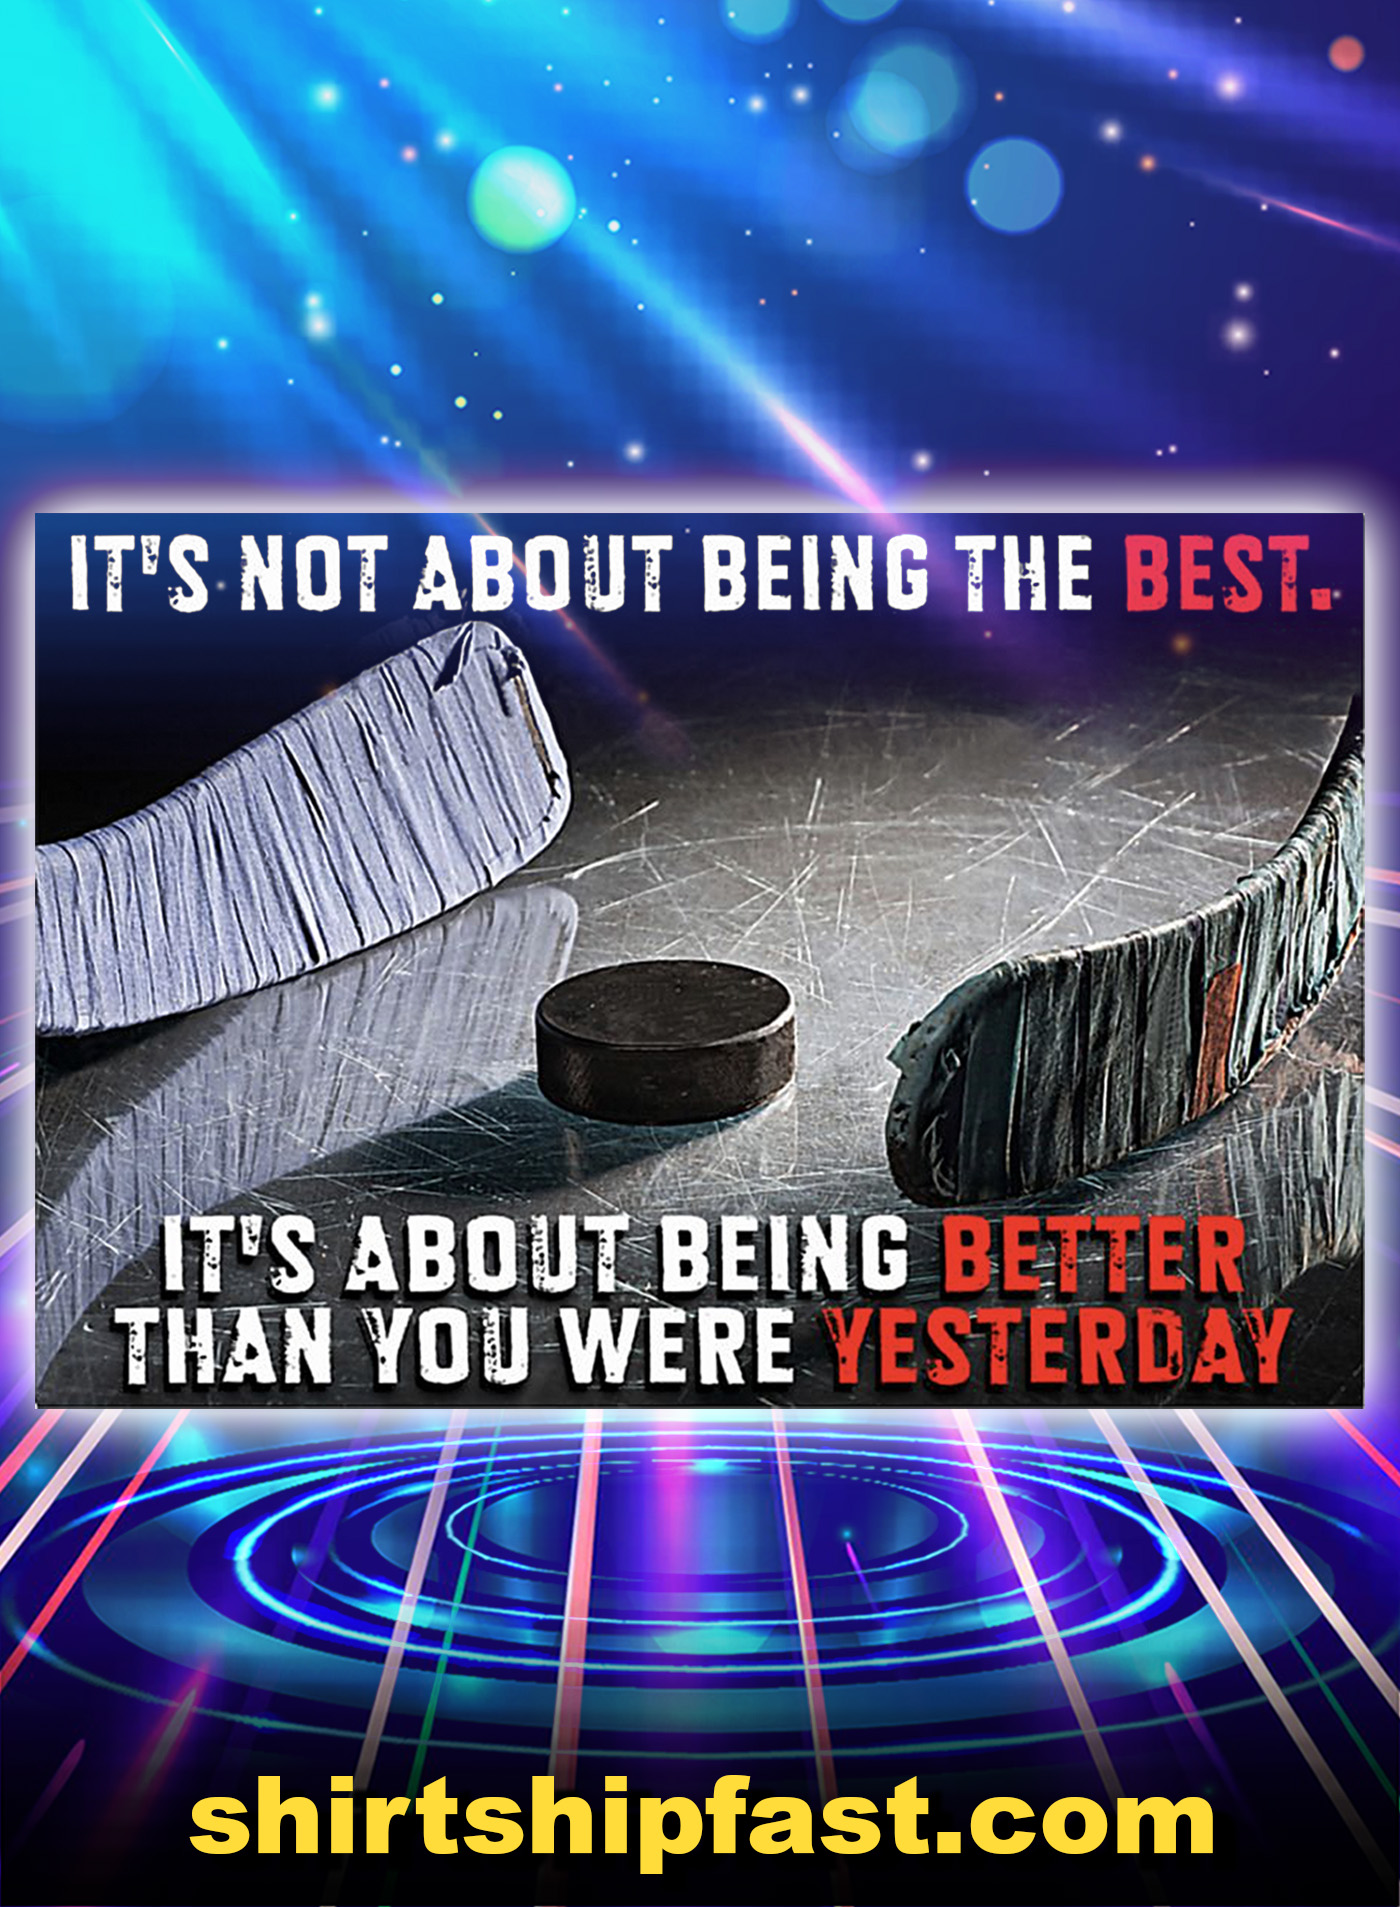 Hockey It's not about being the best poster - A1